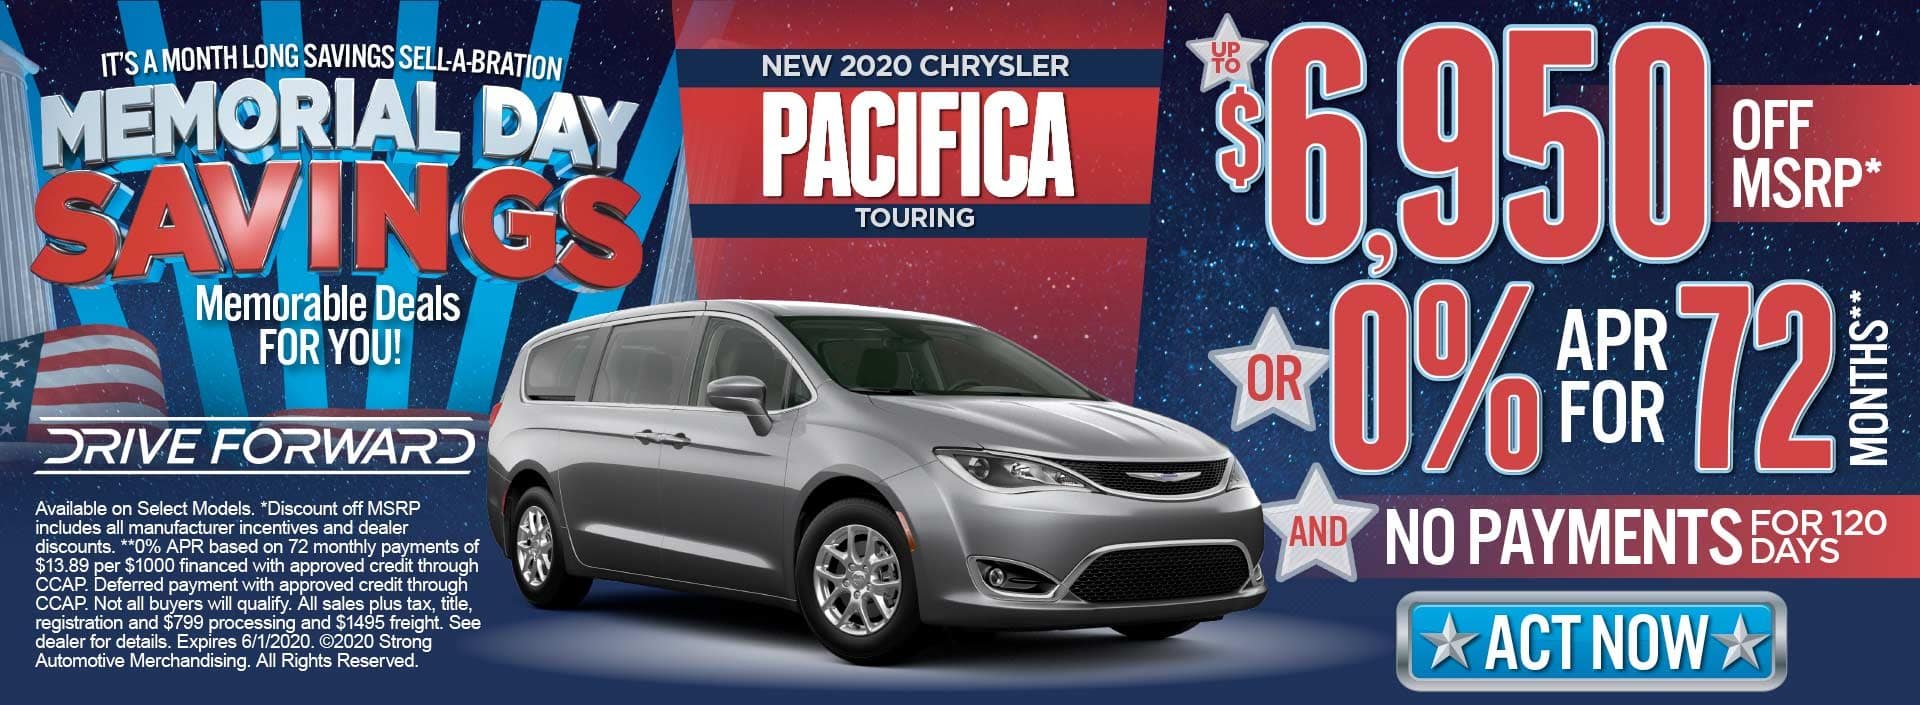 New Chrysler pacifica up to $6950k off msrp* or 0% for 72 mos** and no payments for 120 days*** act now